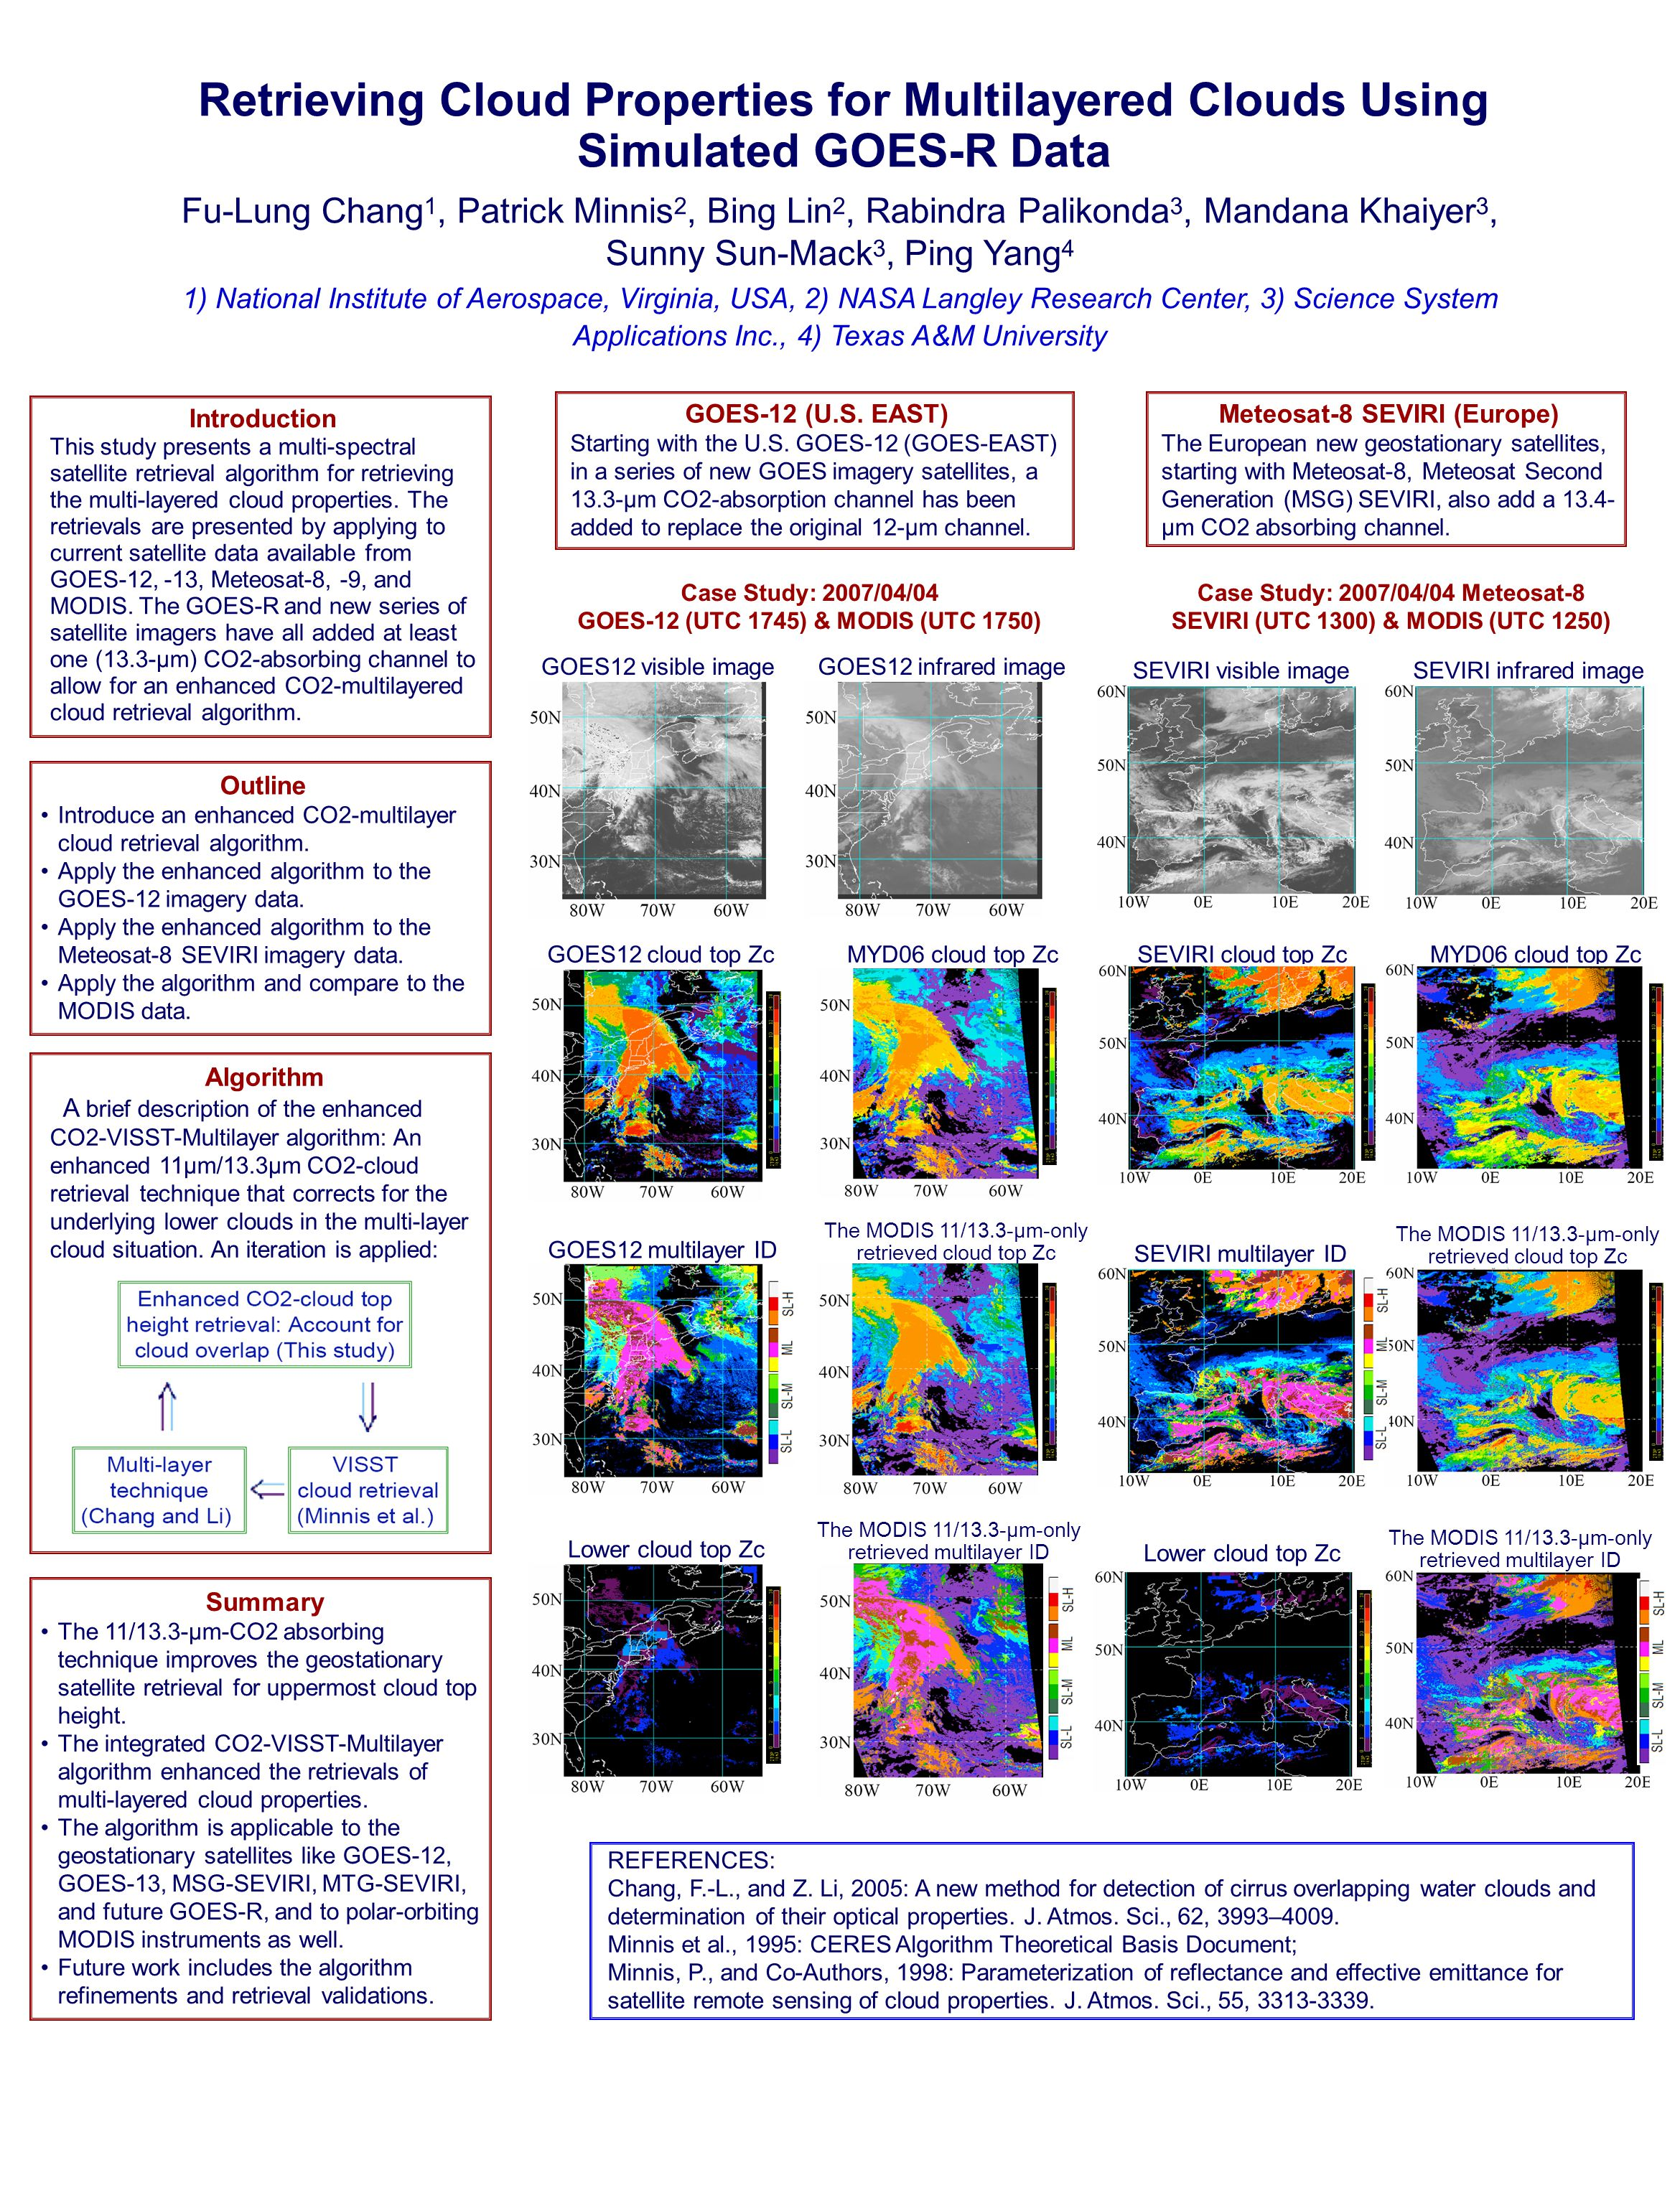 Retrieving Cloud Properties for Multilayered Clouds Using Simulated GOES-R Data Fu-Lung Chang 1, Patrick Minnis 2, Bing Lin 2, Rabindra Palikonda 3, Mandana Khaiyer 3, Sunny Sun-Mack 3, Ping Yang 4 1) National Institute of Aerospace, Virginia, USA, 2) NASA Langley Research Center, 3) Science System Applications Inc., 4) Texas A&M University Meteosat-8 SEVIRI (Europe) The European new geostationary satellites, starting with Meteosat-8, Meteosat Second Generation (MSG) SEVIRI, also add a 13.4- µm CO2 absorbing channel.